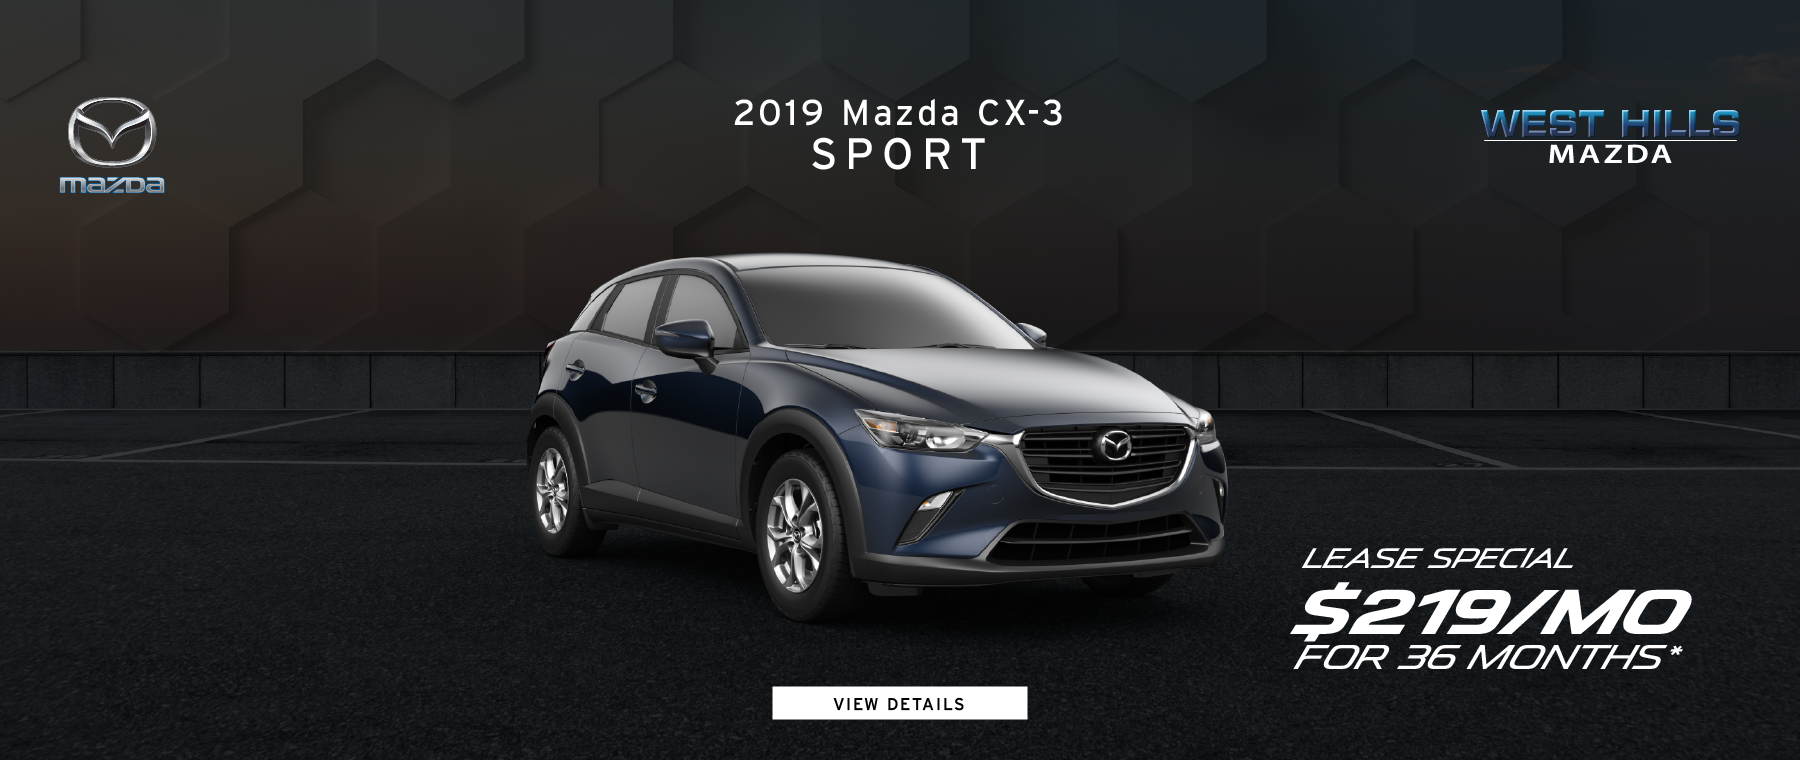 2019 Mazda CX-5 Sport   $229/mo. for 36 mos.* *Valid on 2019 Mazda CX-5 Sport. $229 per month for 36 months. $3,000 due at lease signing; includes a $595 acquisition fee. Valid on VIN: JM3KFBBM5K0515704. MSRP is $26,945. No security deposit with approved credit. Lease for well qualified buyers. Excludes taxes, title, and fees. 36 monthly payments required. Not all lessees will qualify for lowest payment through participating lender. Residency restrictions apply. Lessee responsible for registration, insurance, maintenance, excess wear/tear & for mileage over 10,000 miles/per year at $0.15/mile per year. Option to purchase at lease end. A negotiable dealer documentary service fee of up to $150 may be added to the sale price or capitalized cost. Offer Expires: 7/31/2019.